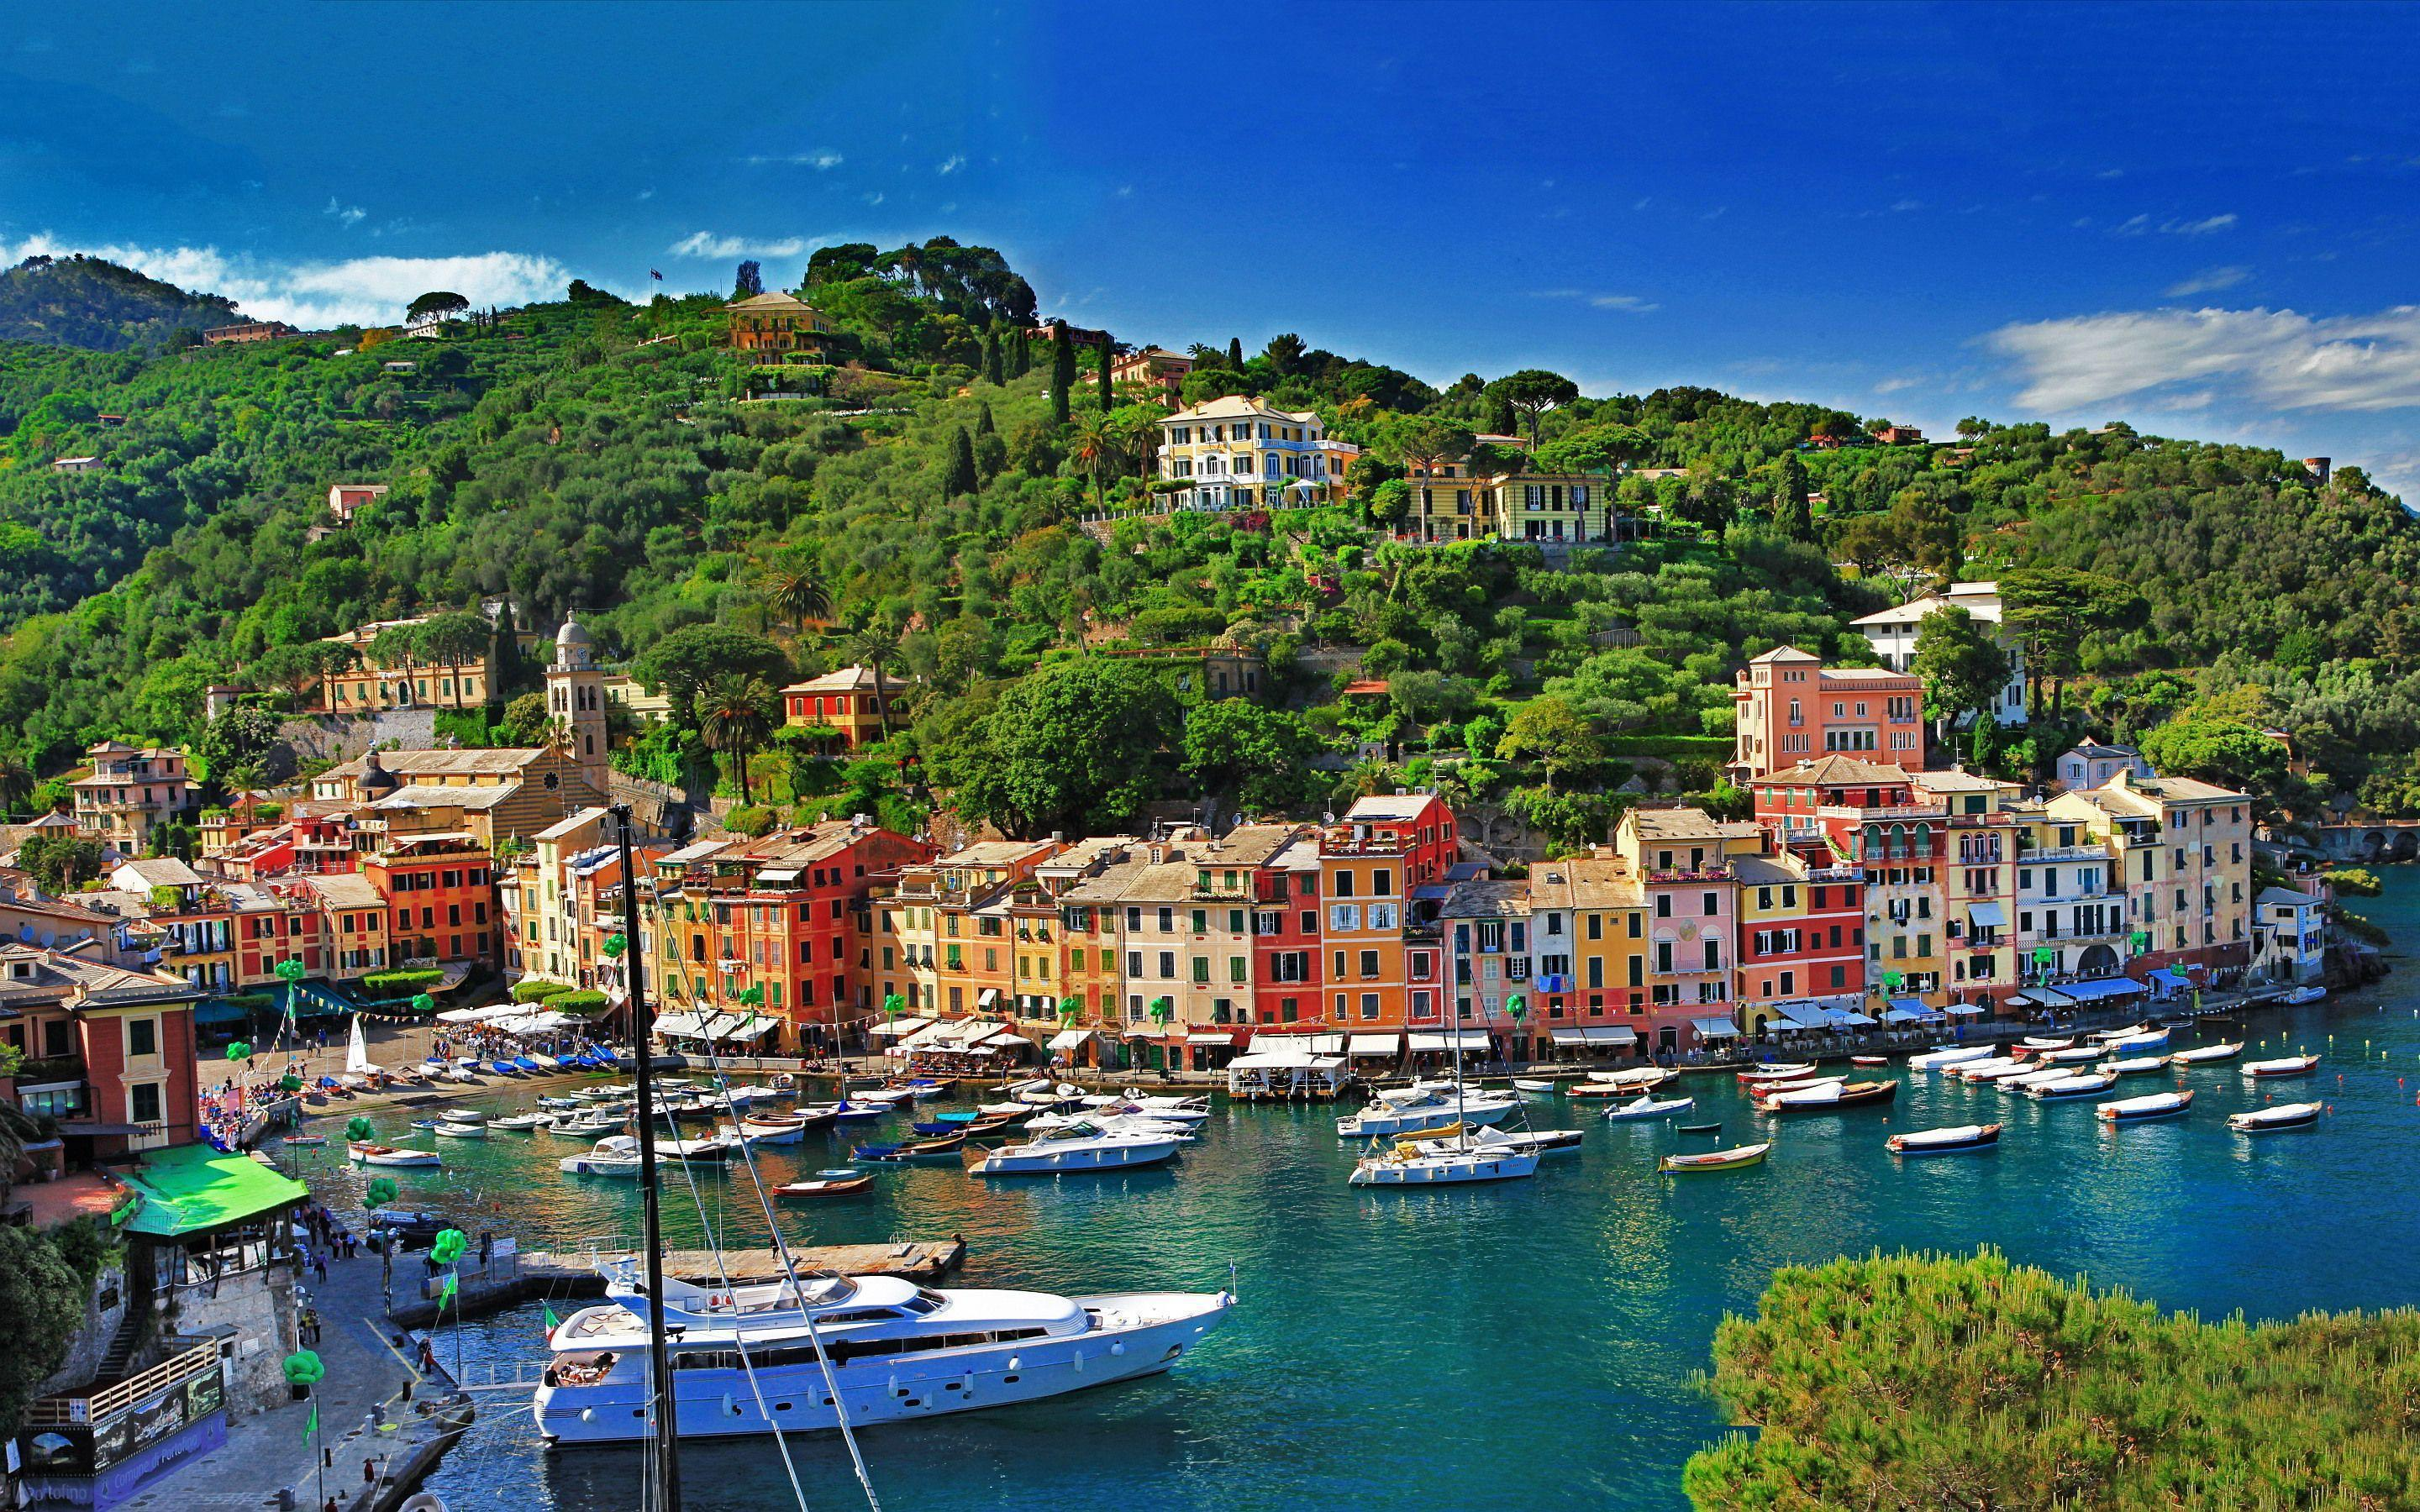 portofino italy Wallpapers